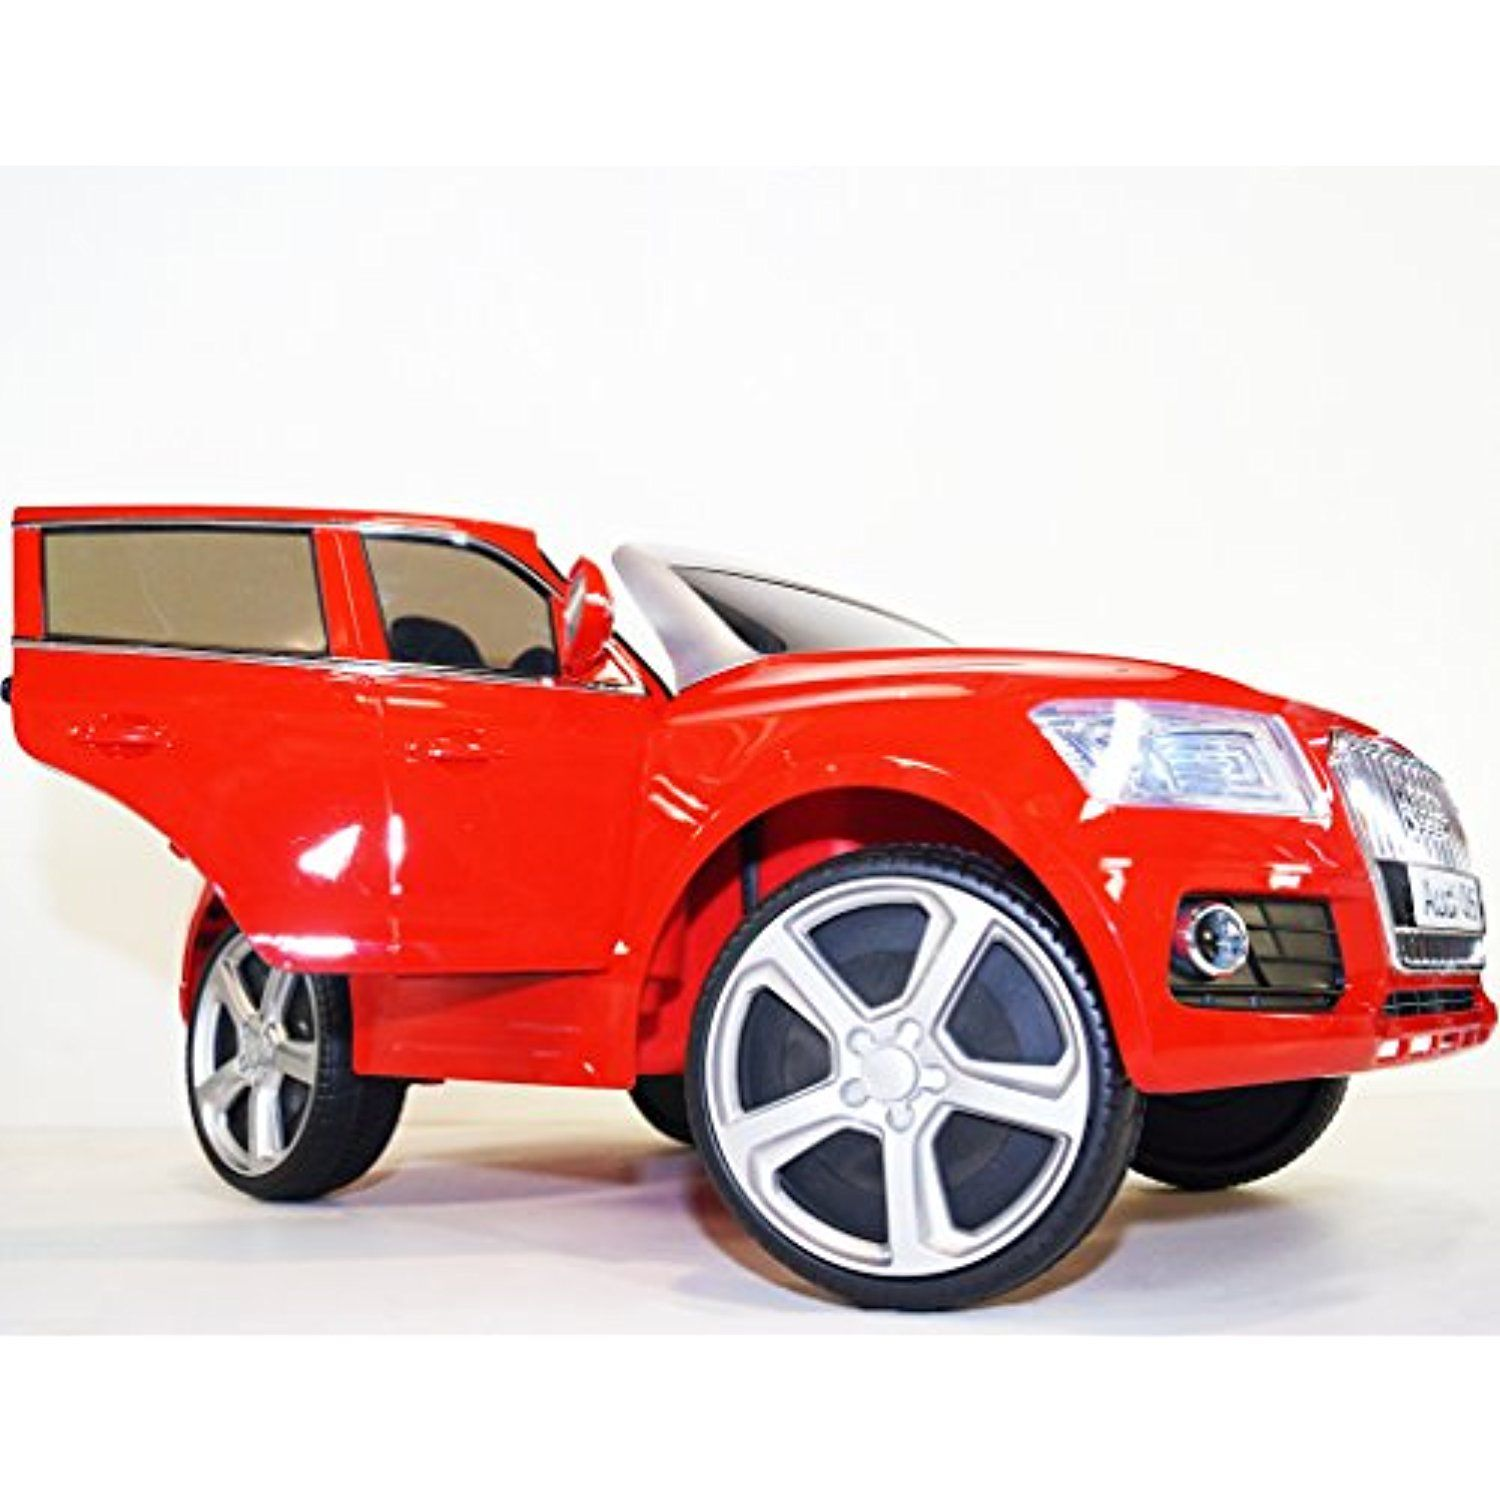 Ride on car AUDI Q5 style. 2 SEATER. 2 speed. Electric car